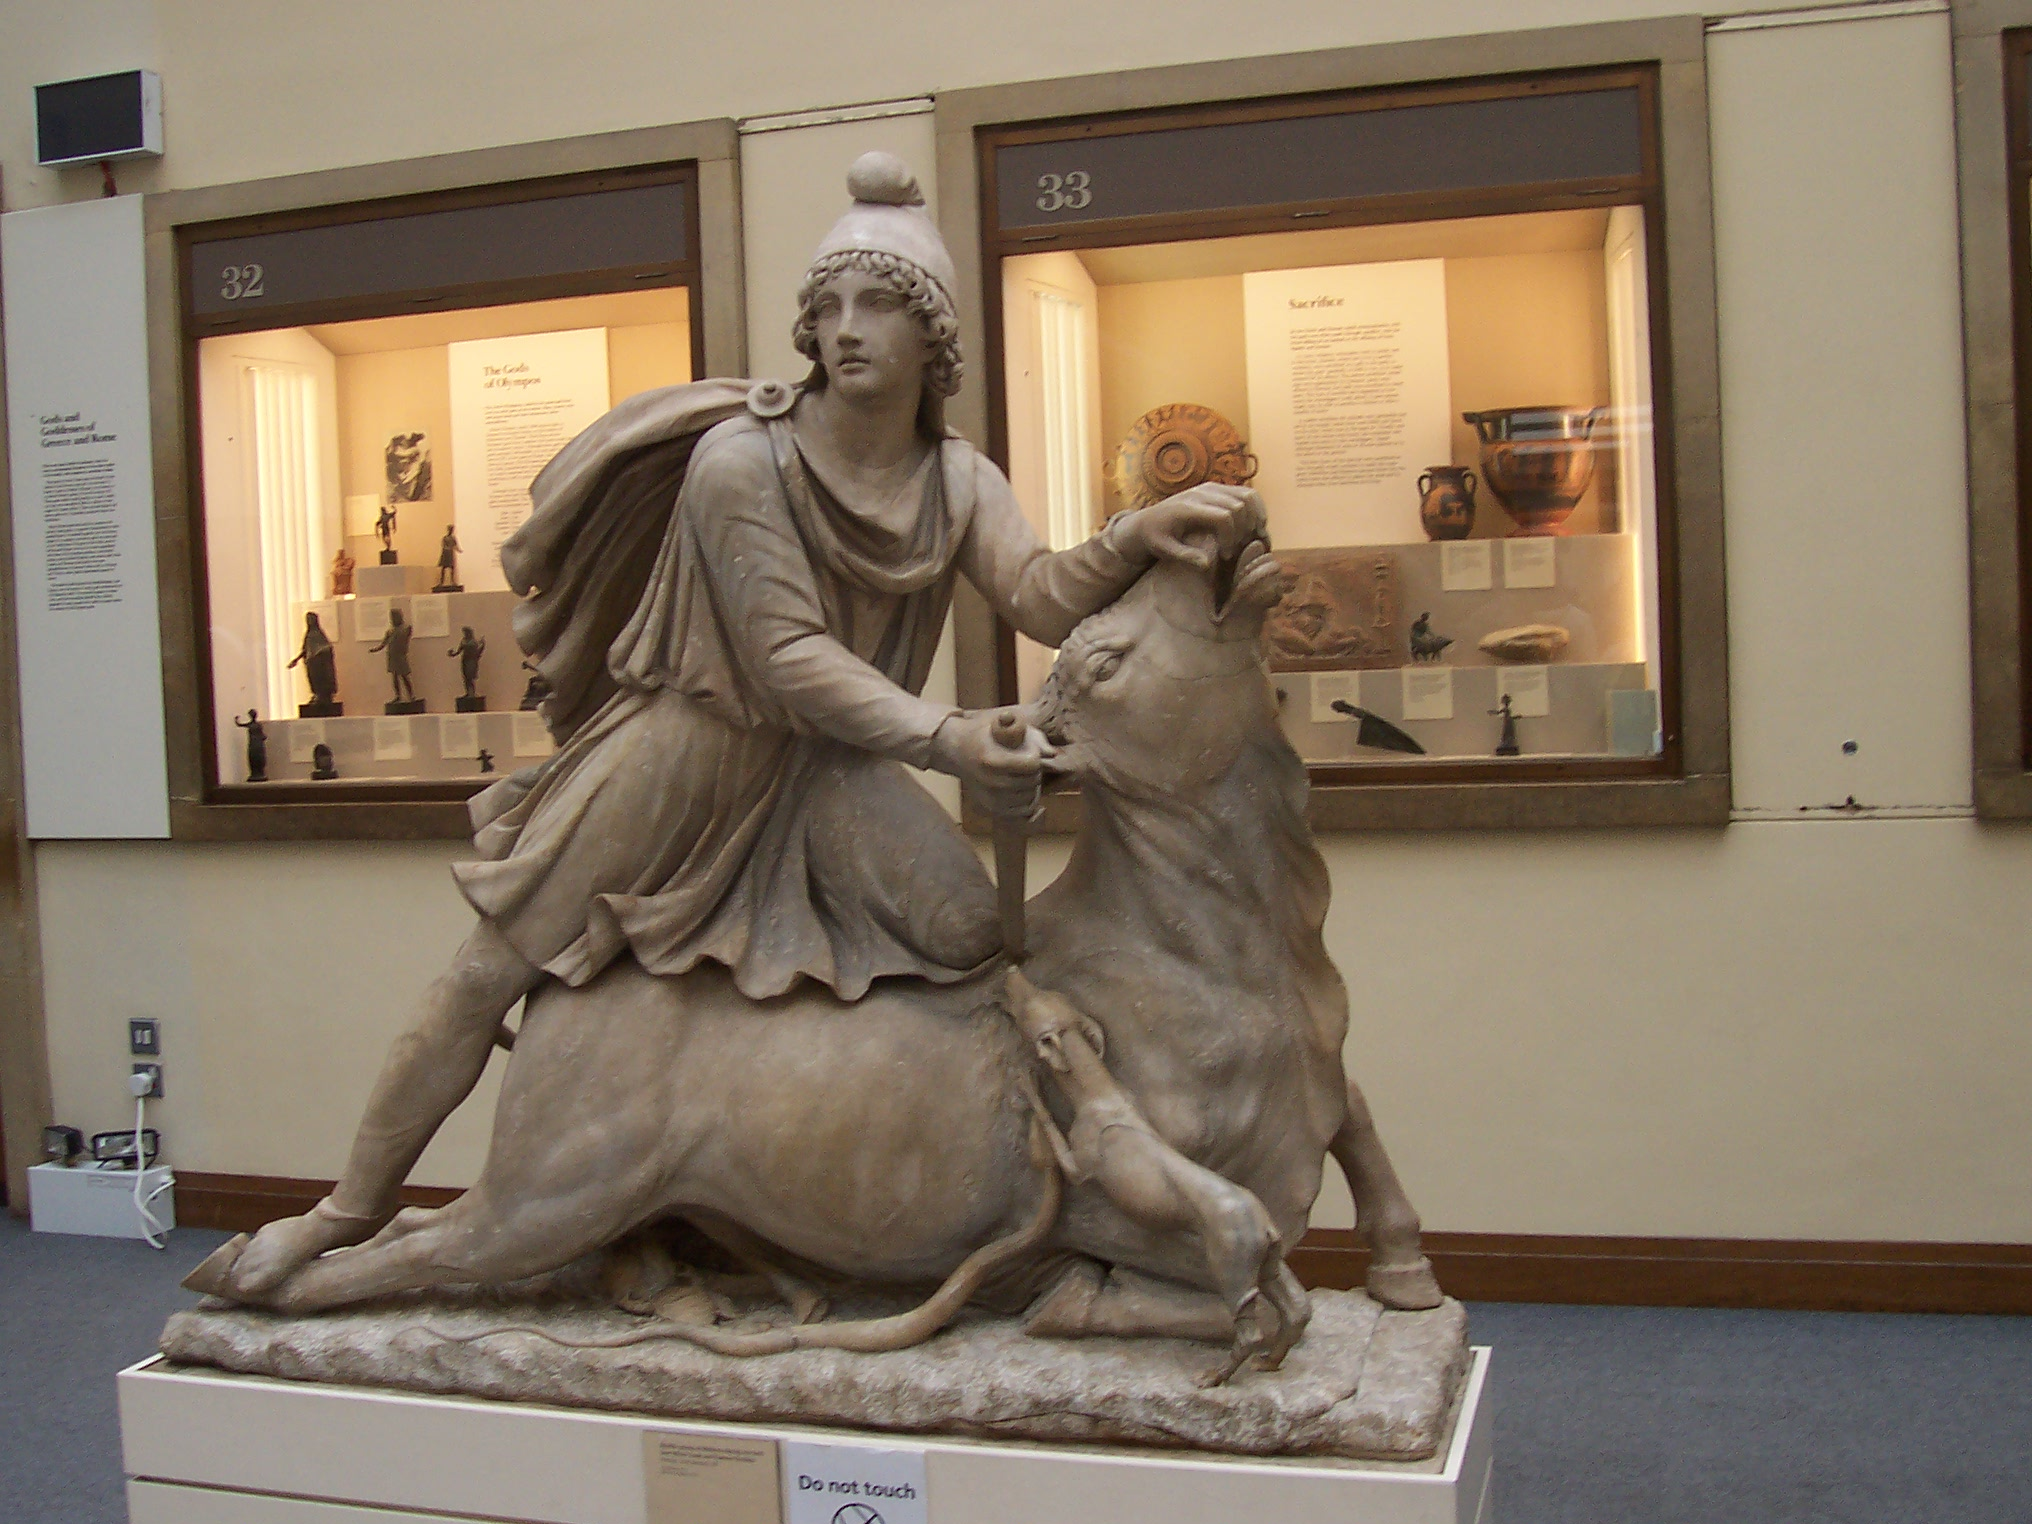 cupid and psyche myth or folktale Warning: gethostbyaddr(): address is not a valid ipv4 or ipv6 address in /home/myth/public_html/topphp on line 11.